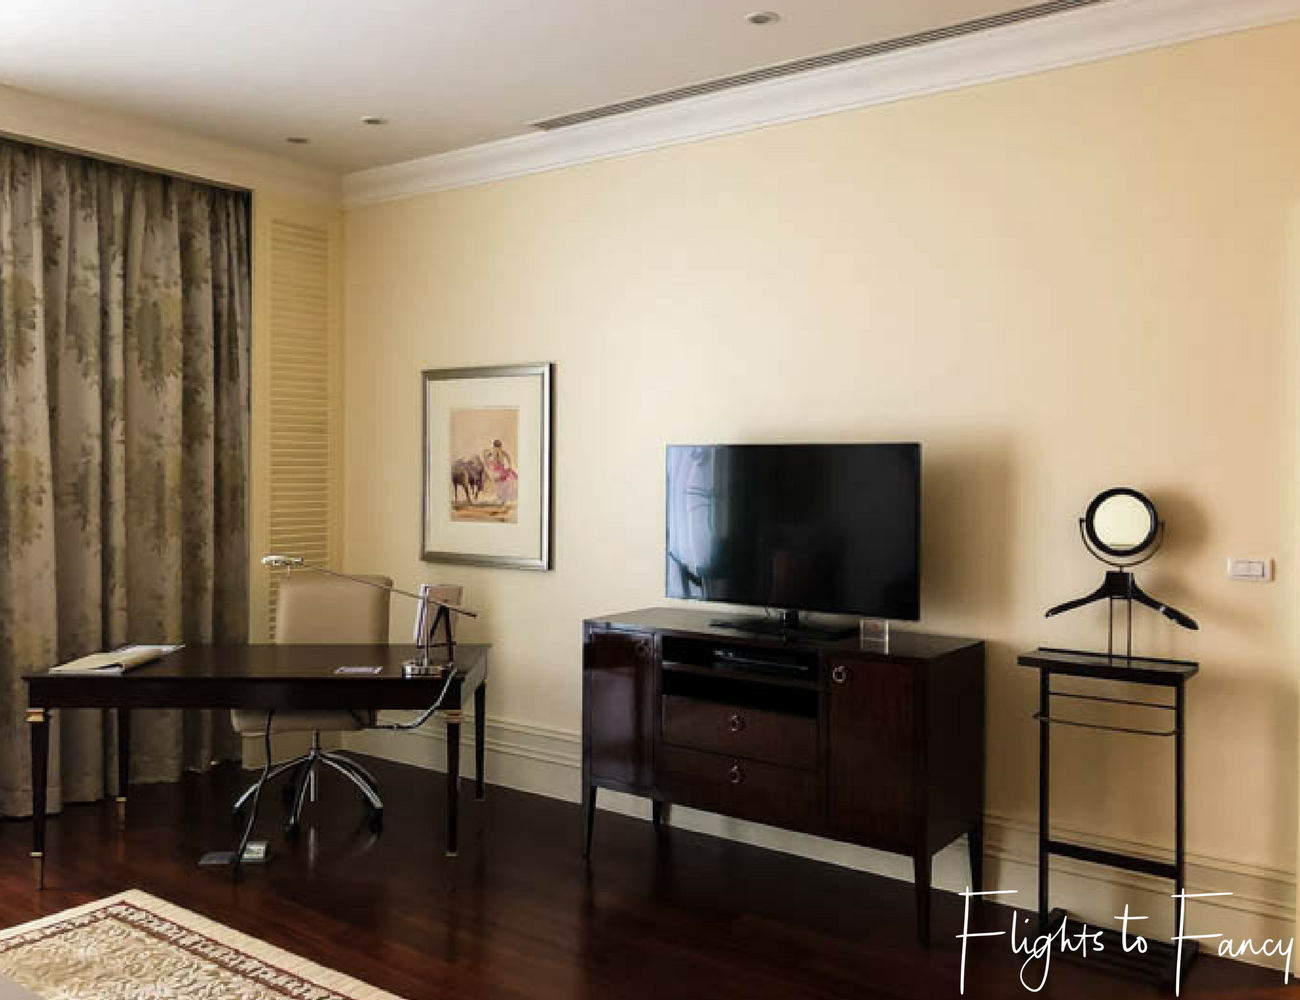 Flights To Fancy at Raffles Manila - 5 star hotel in Manila